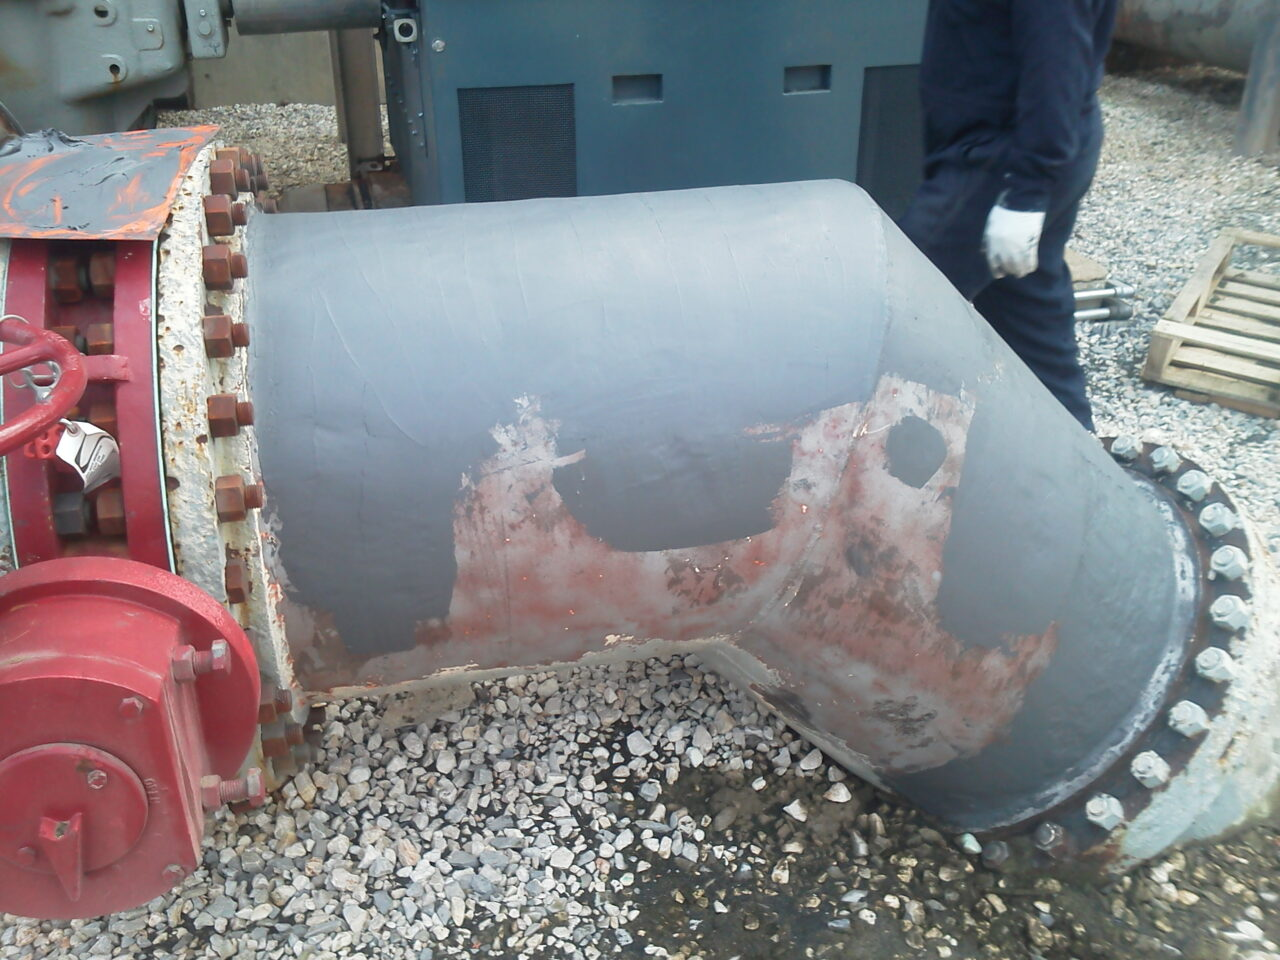 Epoxy-based composite applied to fill the pits